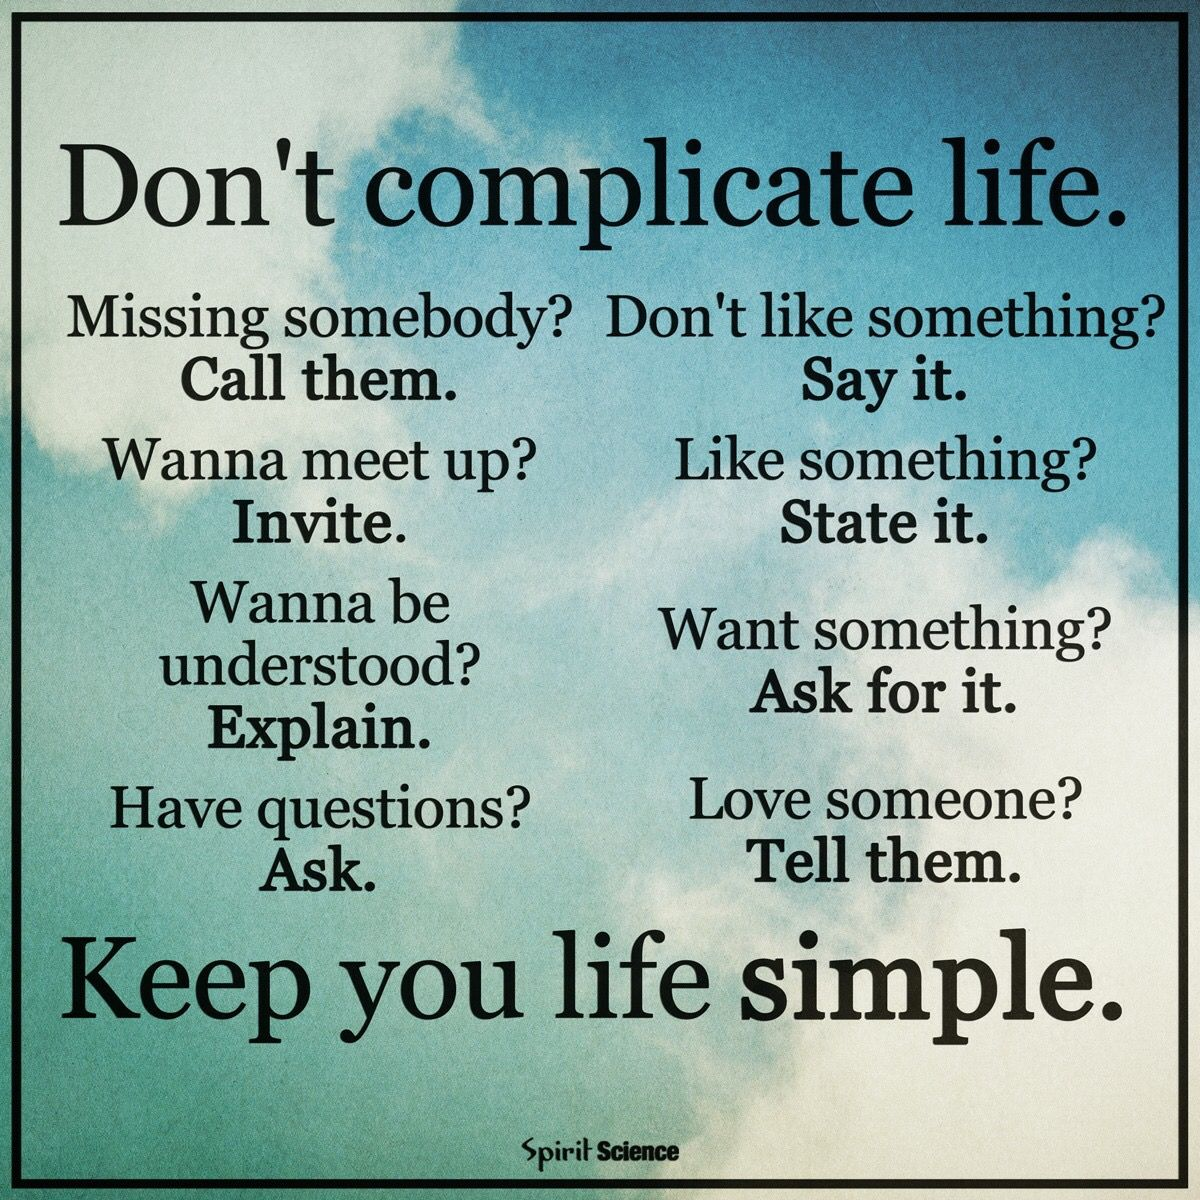 Motivational Funny Quotes On Life Keep It Simple❣It's All About The Little Things❣ Www